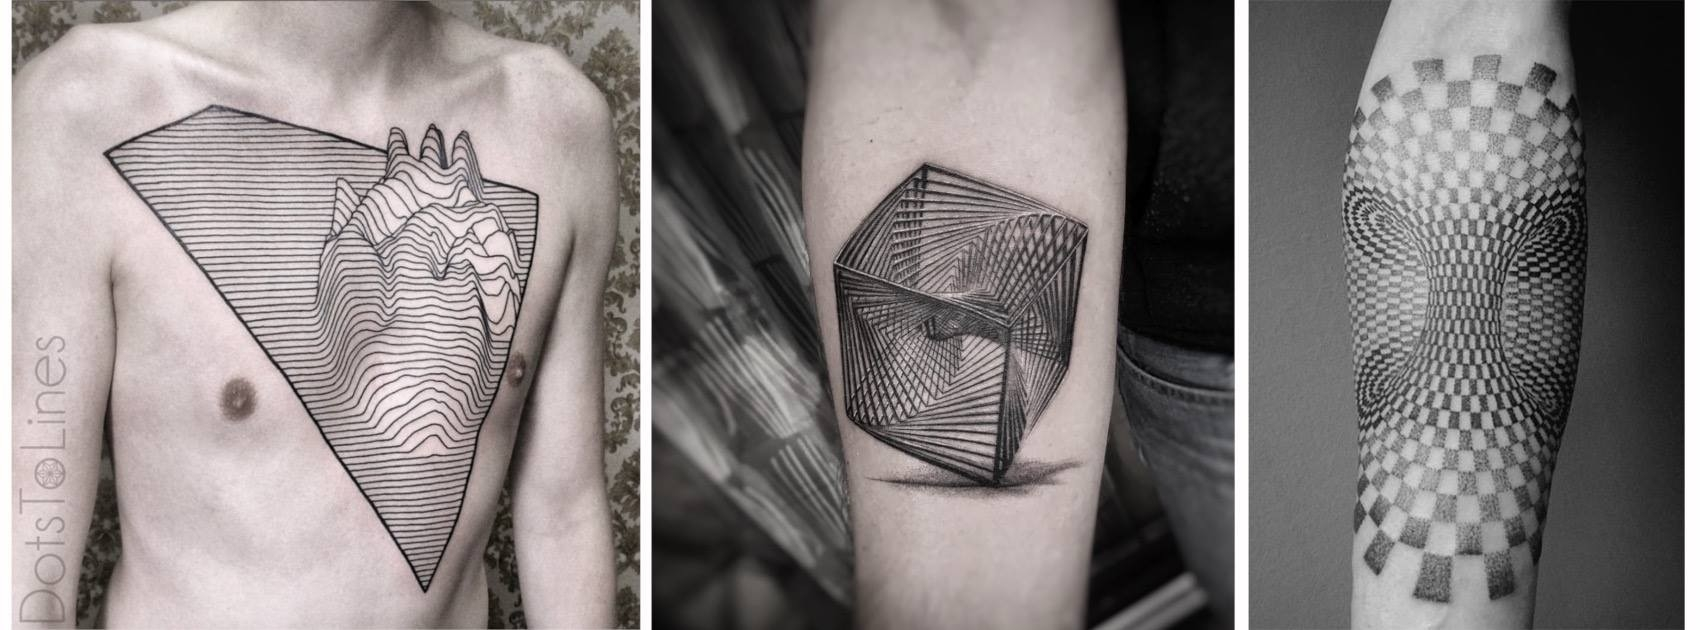 Formas Geometricas Tattoo Designs - Buscar Con Google | Tattoo throughout 3D Geometric Shapes Tattoo 19483